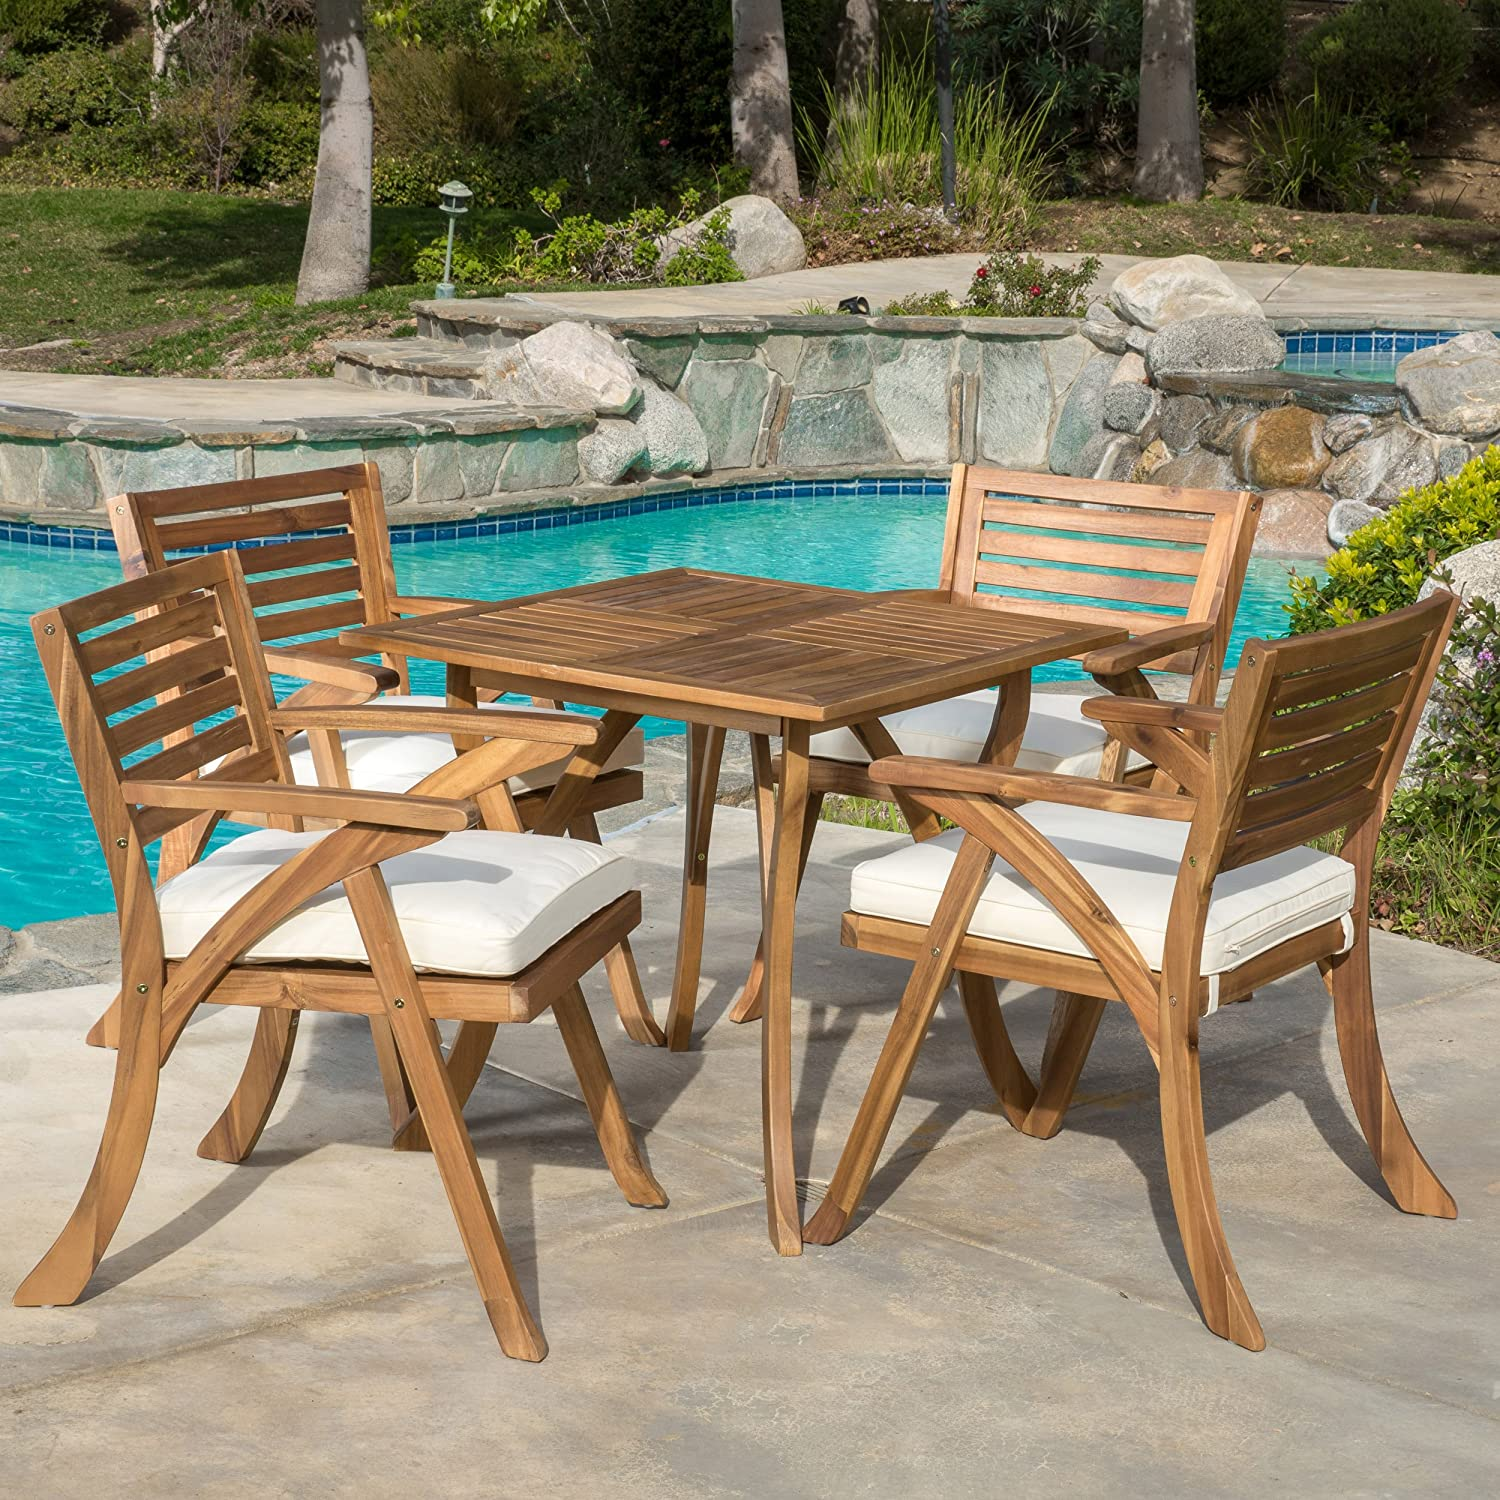 Christopher Knight Home 296620 Deal Furniture Deandra 5-Piece Wood Outdoor Dining Set with Cu, Natural Stain